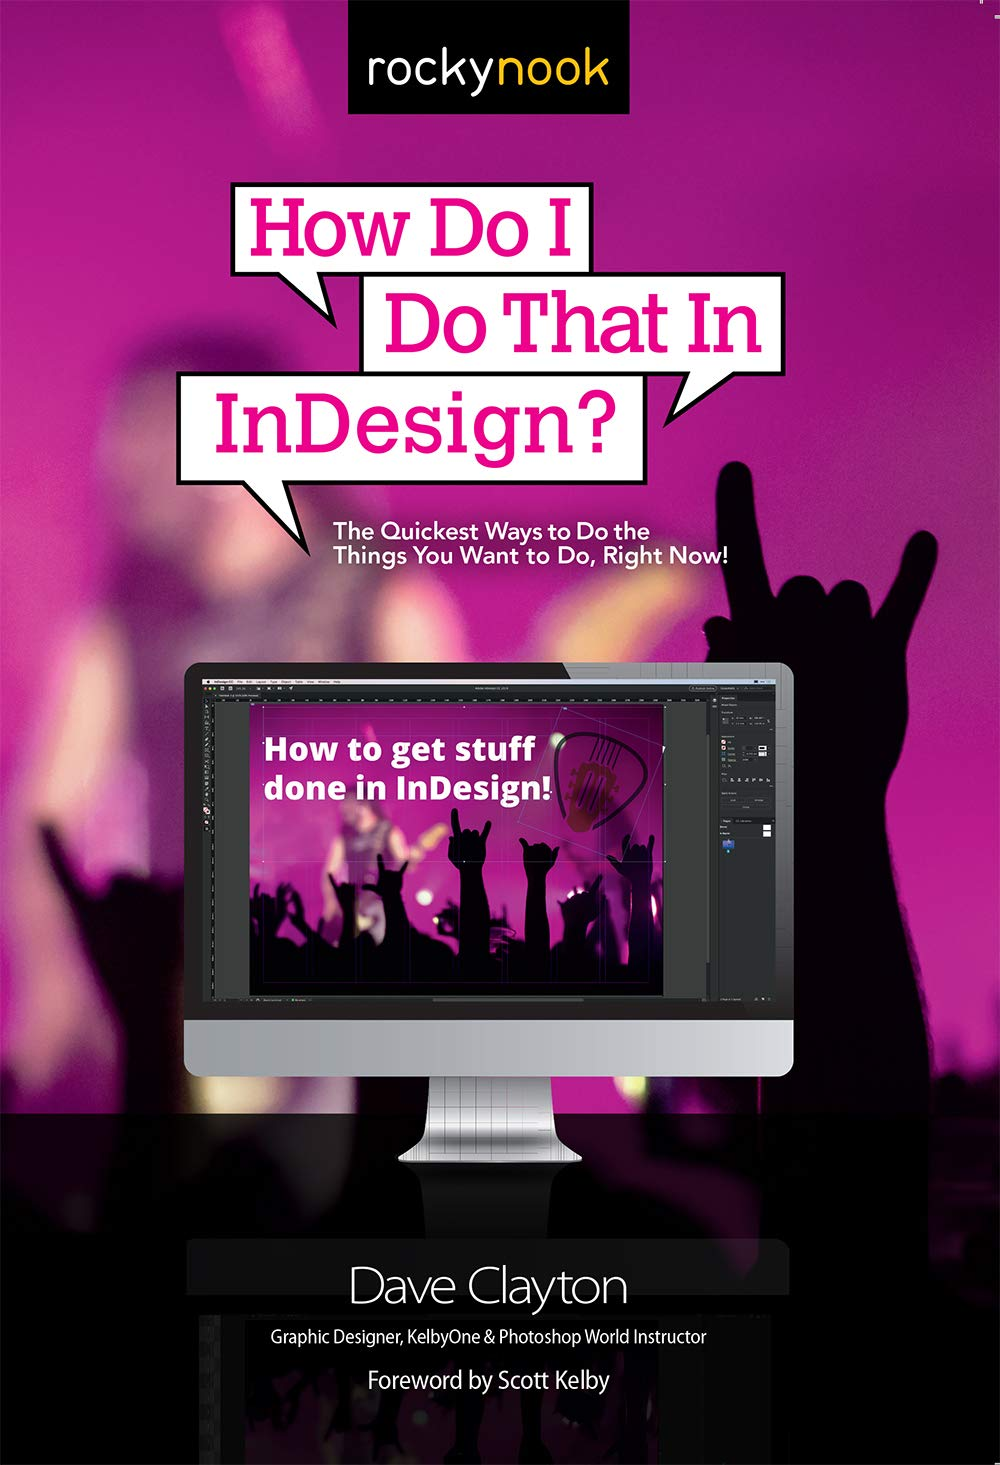 How Do I Do That In InDesign - Dave Clayton